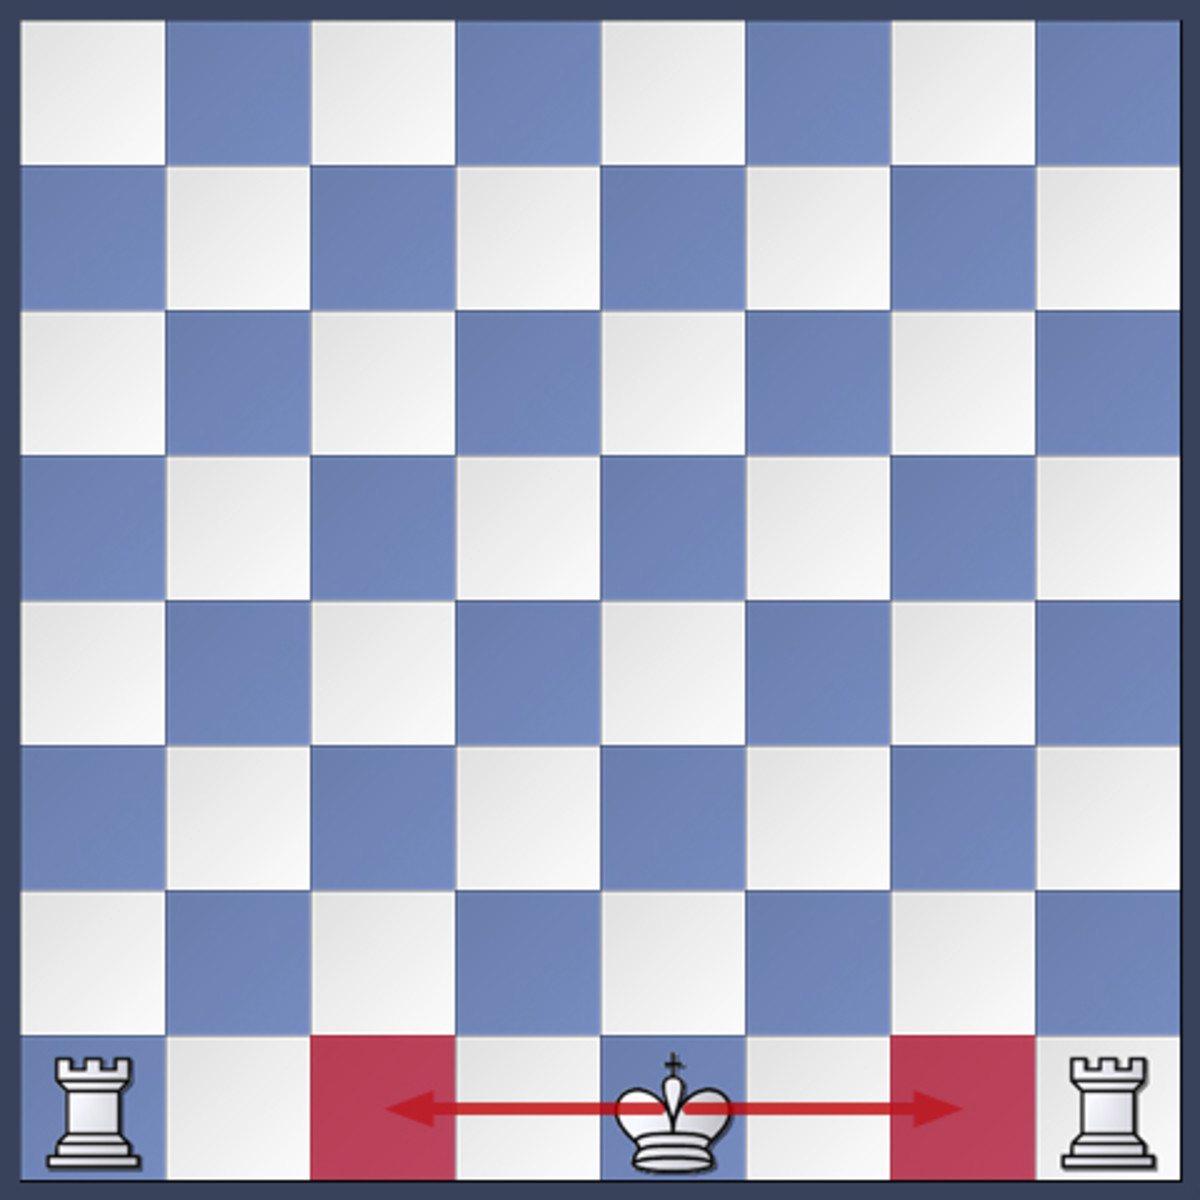 The king can castle by moving two squares to the left or two squares to the right towards his own rook.